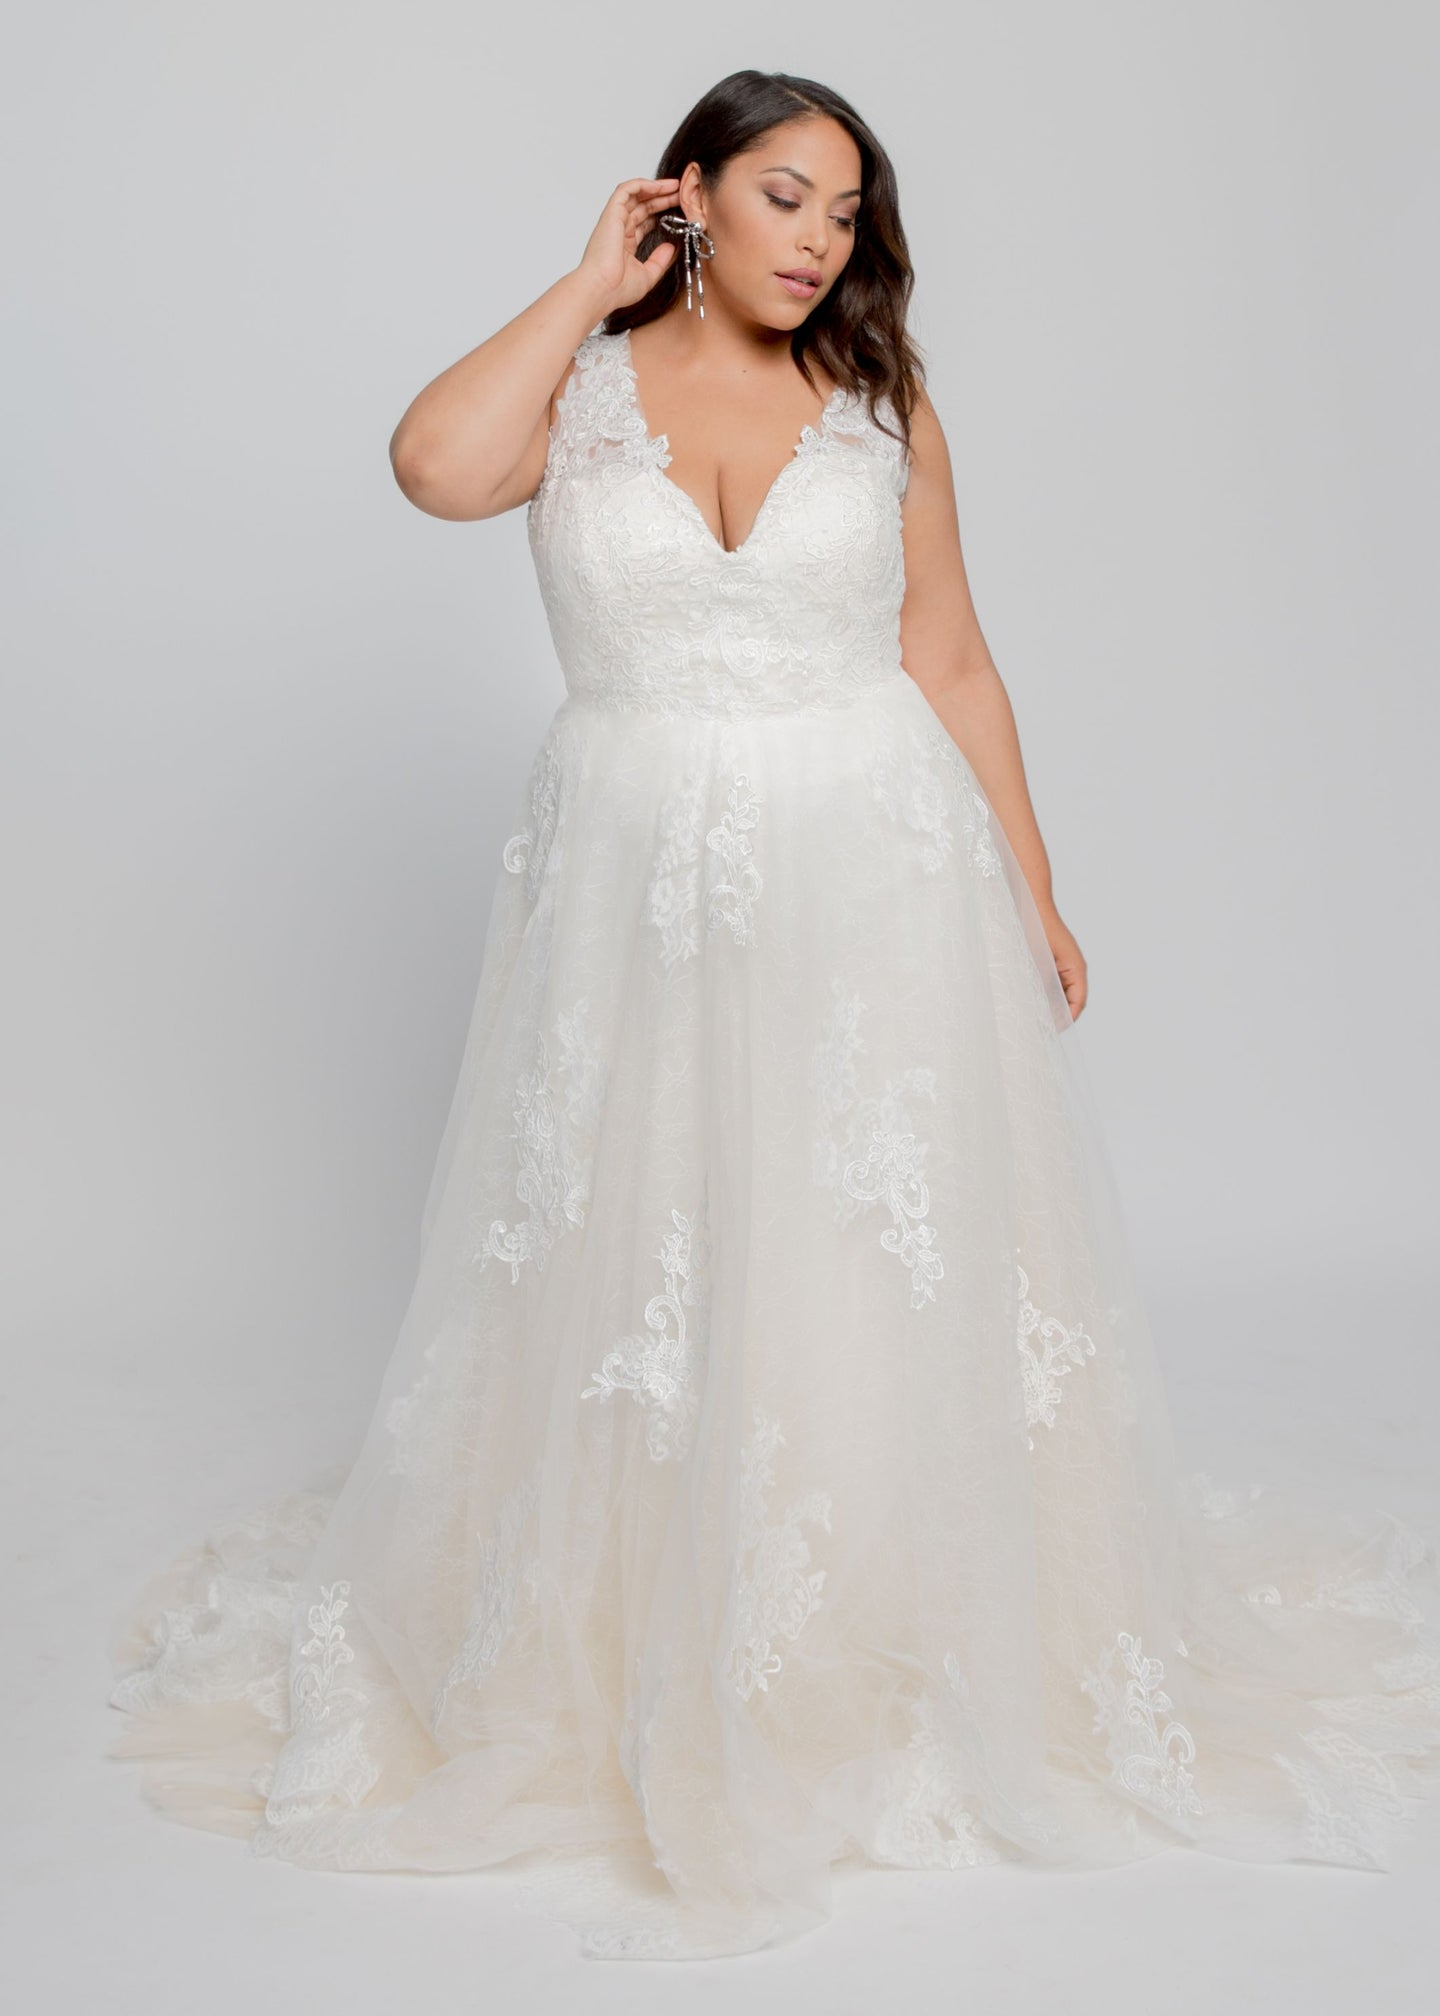 Gorgeous bridal gowns for all body shapes: plus size, curvy, or petite brides. Try on our wedding dresses at home. Size 0-30. Comfortable. Convenient. Fun. Lace or satin. Mermaid or A-line.  Fulfill your lace dreams with this gown featuring a stunning lace-lined V neckline and layered lace and tulle skirt. Romantic illusion lace covers the bodice, while wide straps offer comfort and support. Beautiful appliques on tulle cover additional lace and champagne tulle layers.